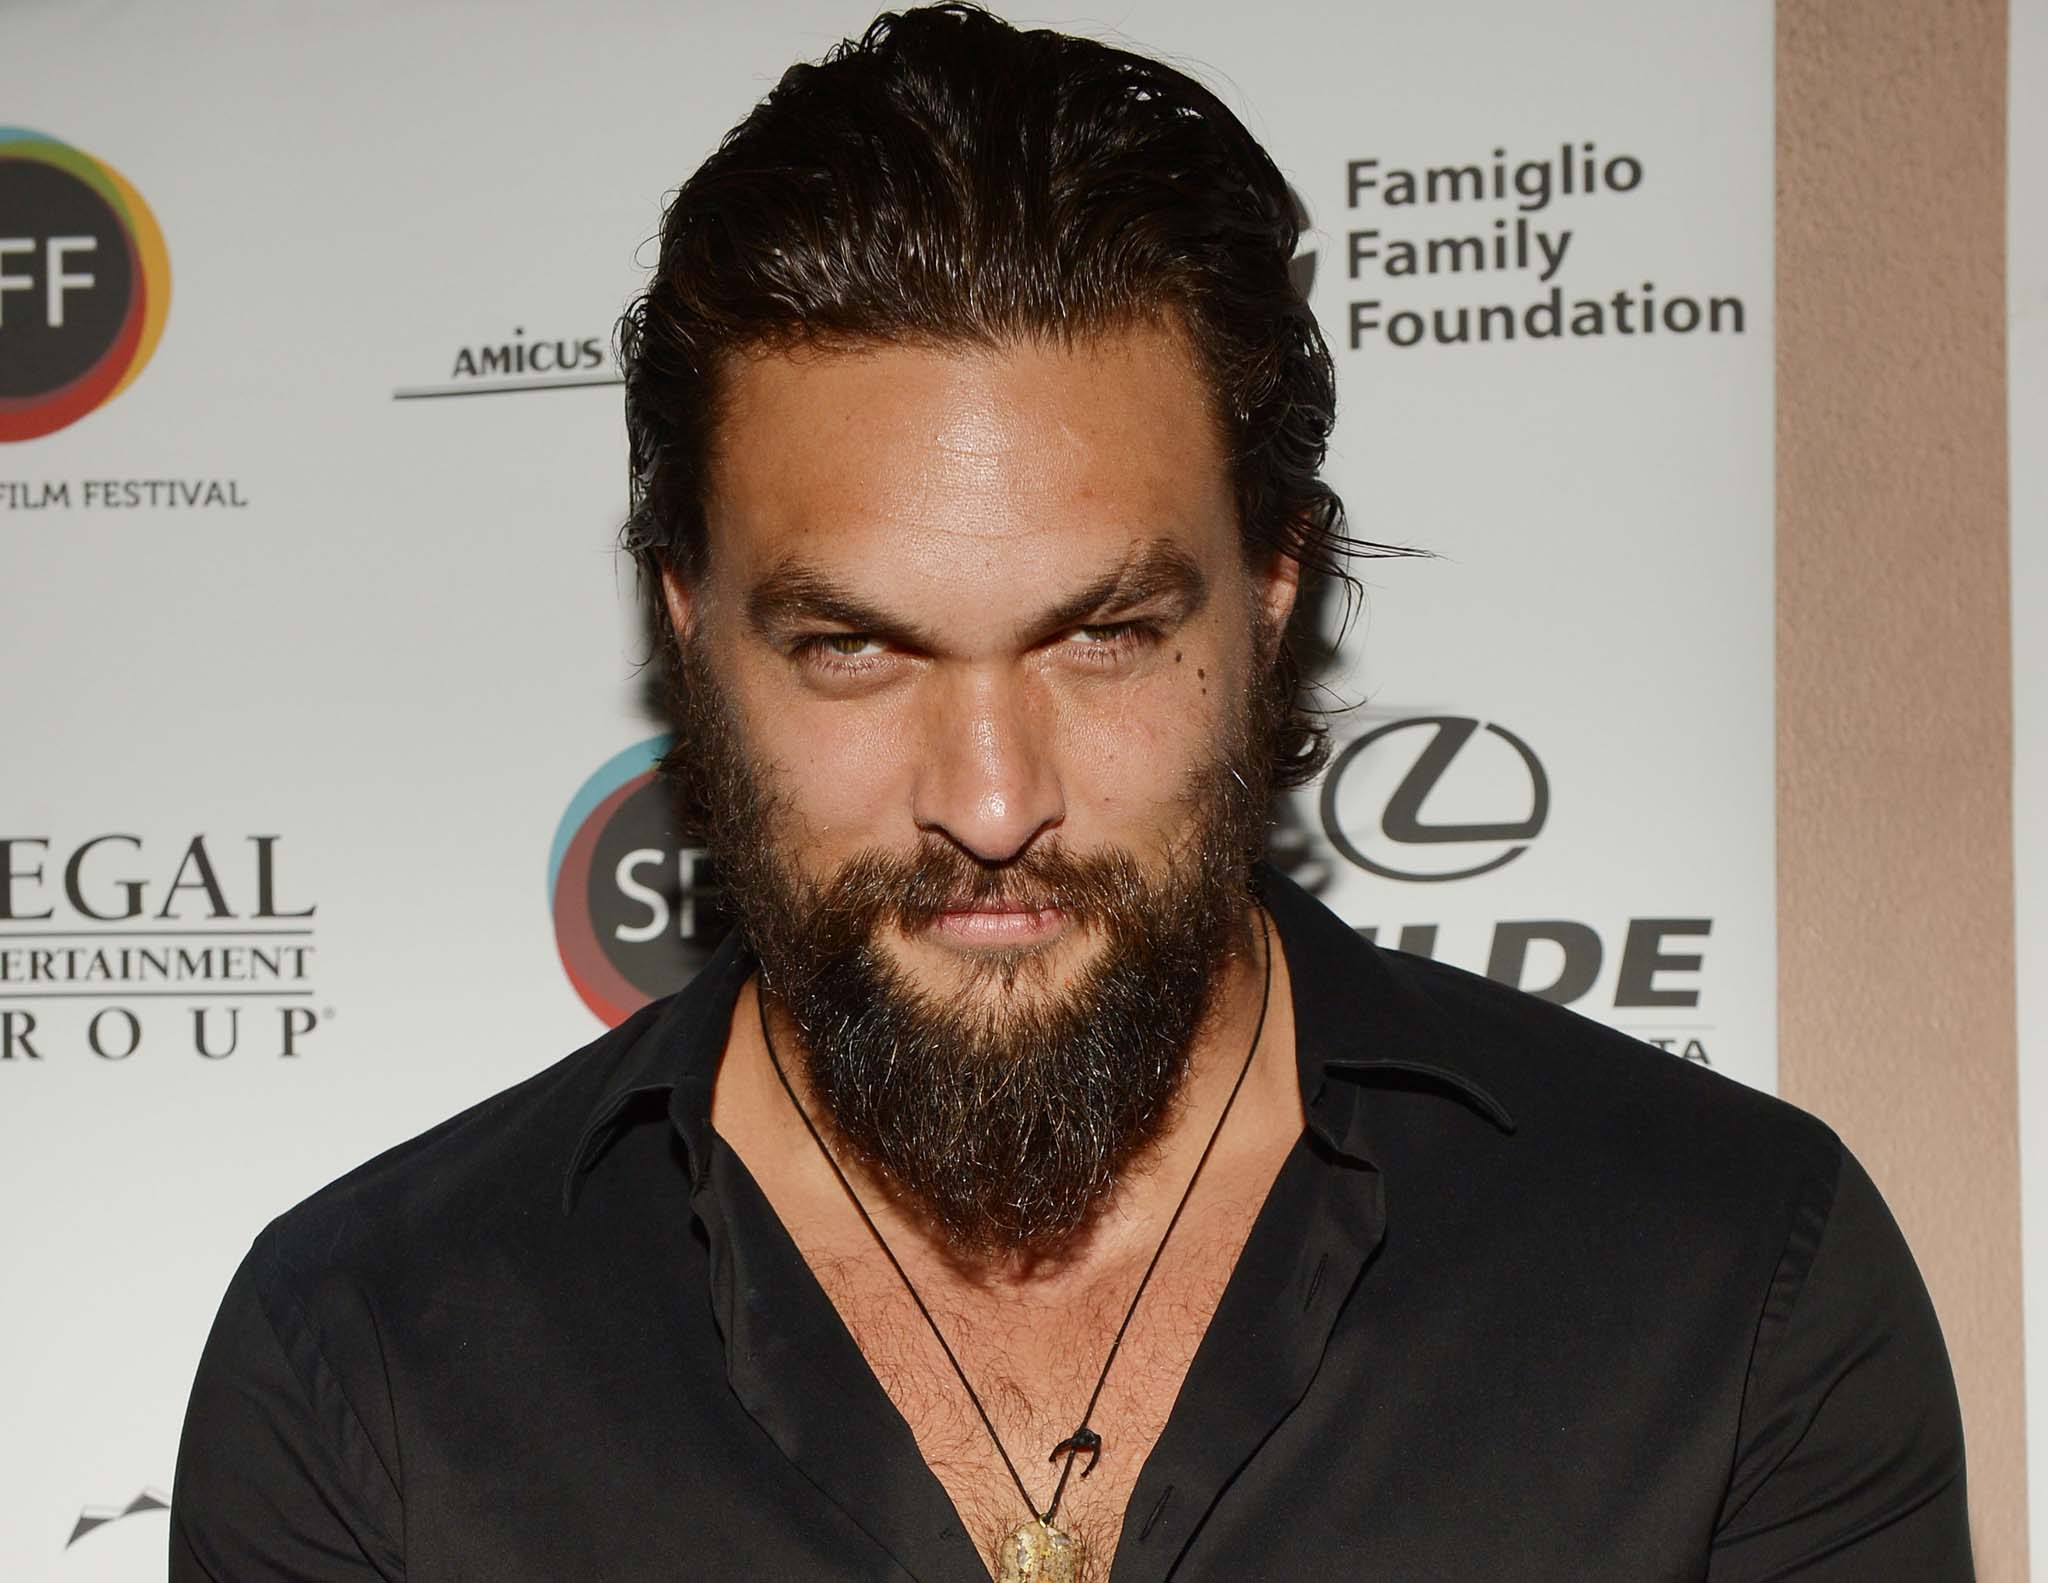 Watch Game Of Thrones Star Jason Momoa Perform A Haka For His